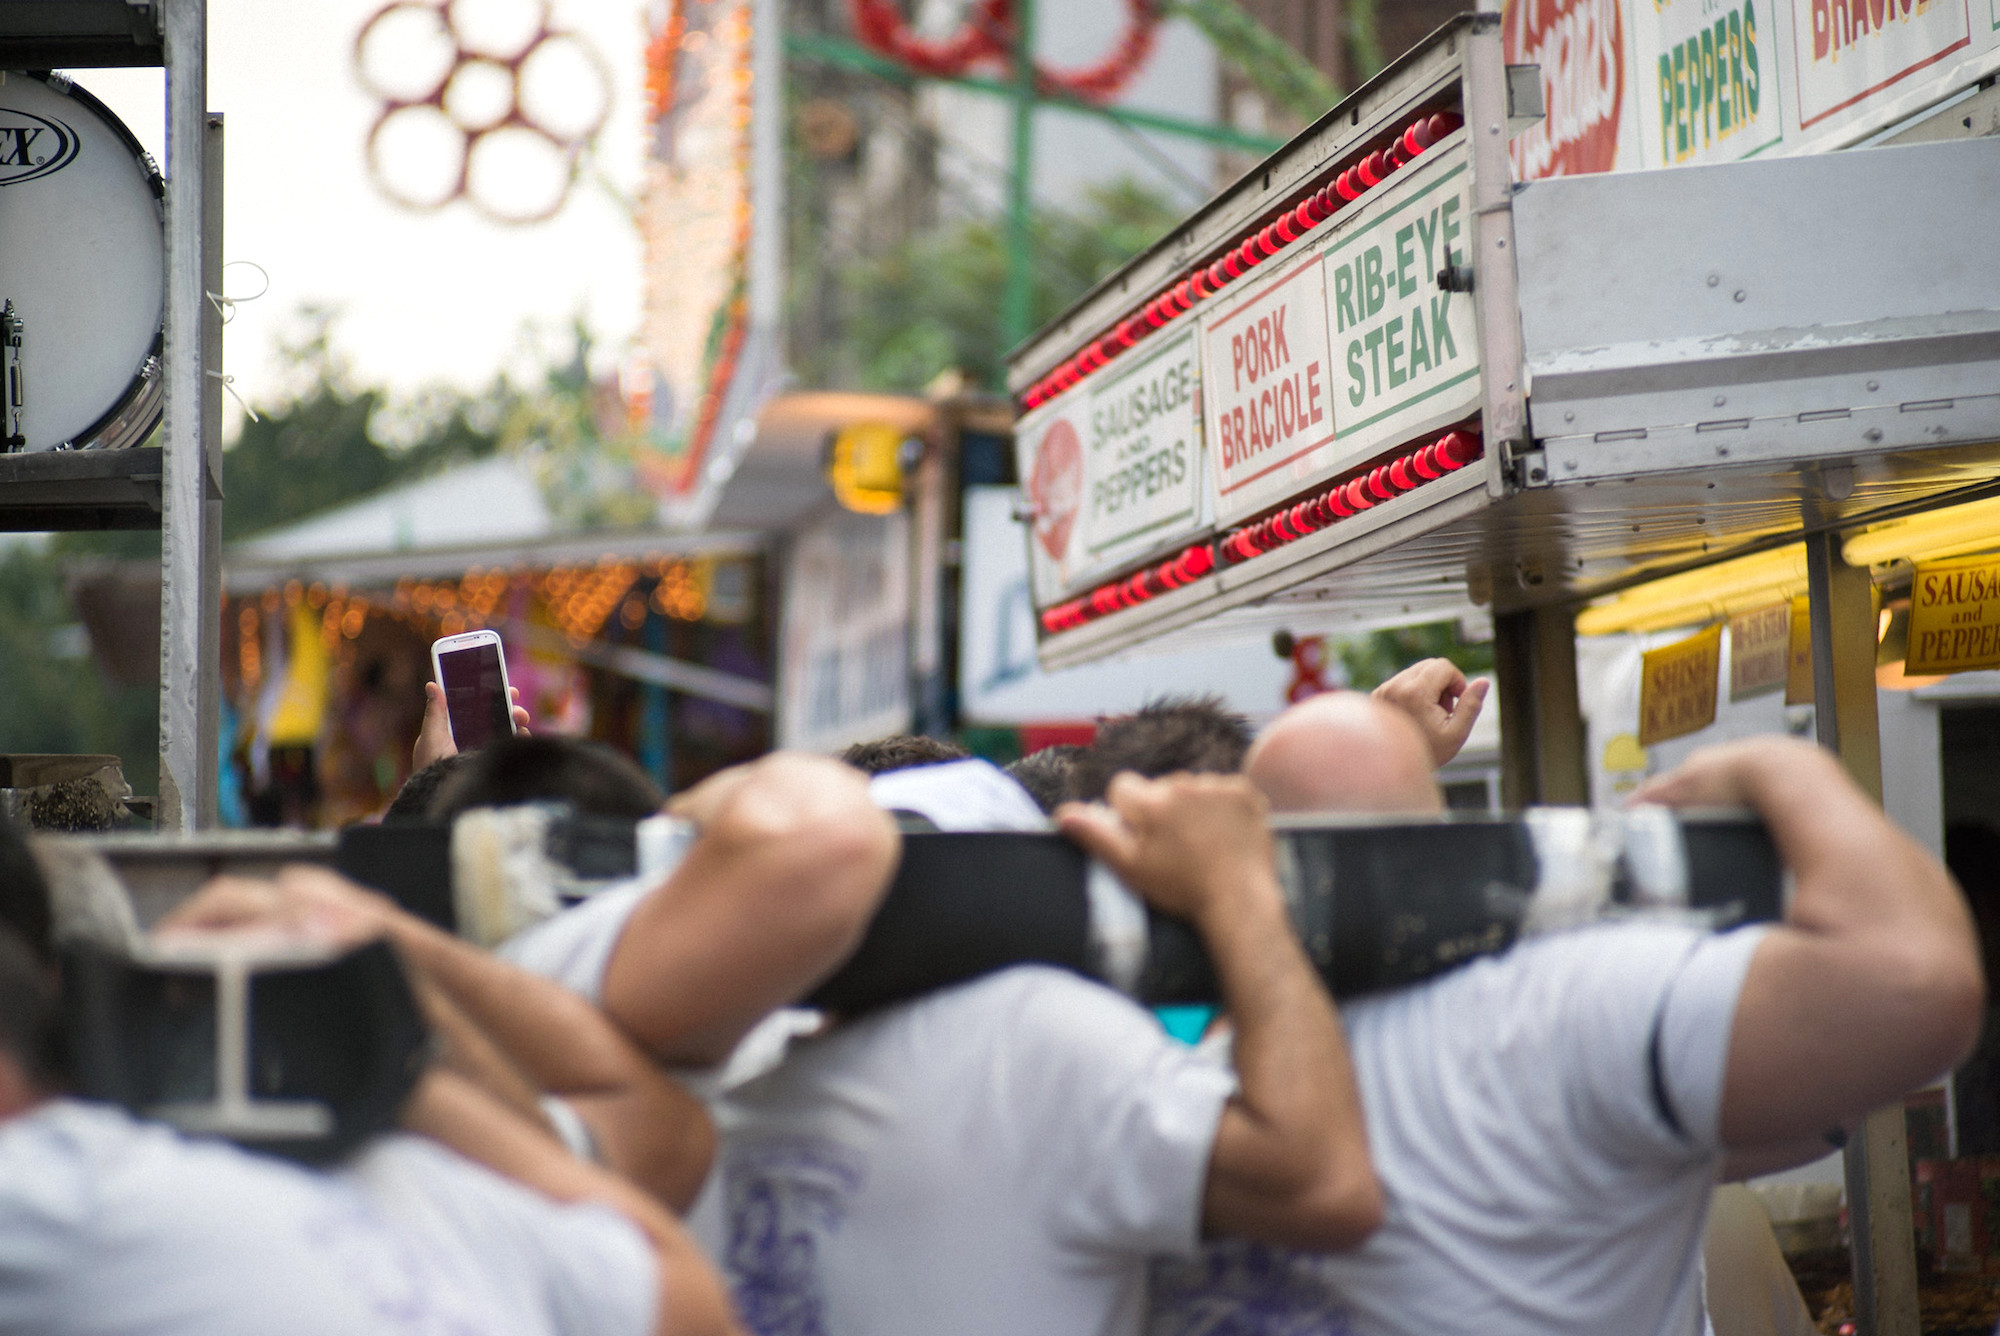 The Giglio Feast: History, fun facts, and what to expect at this